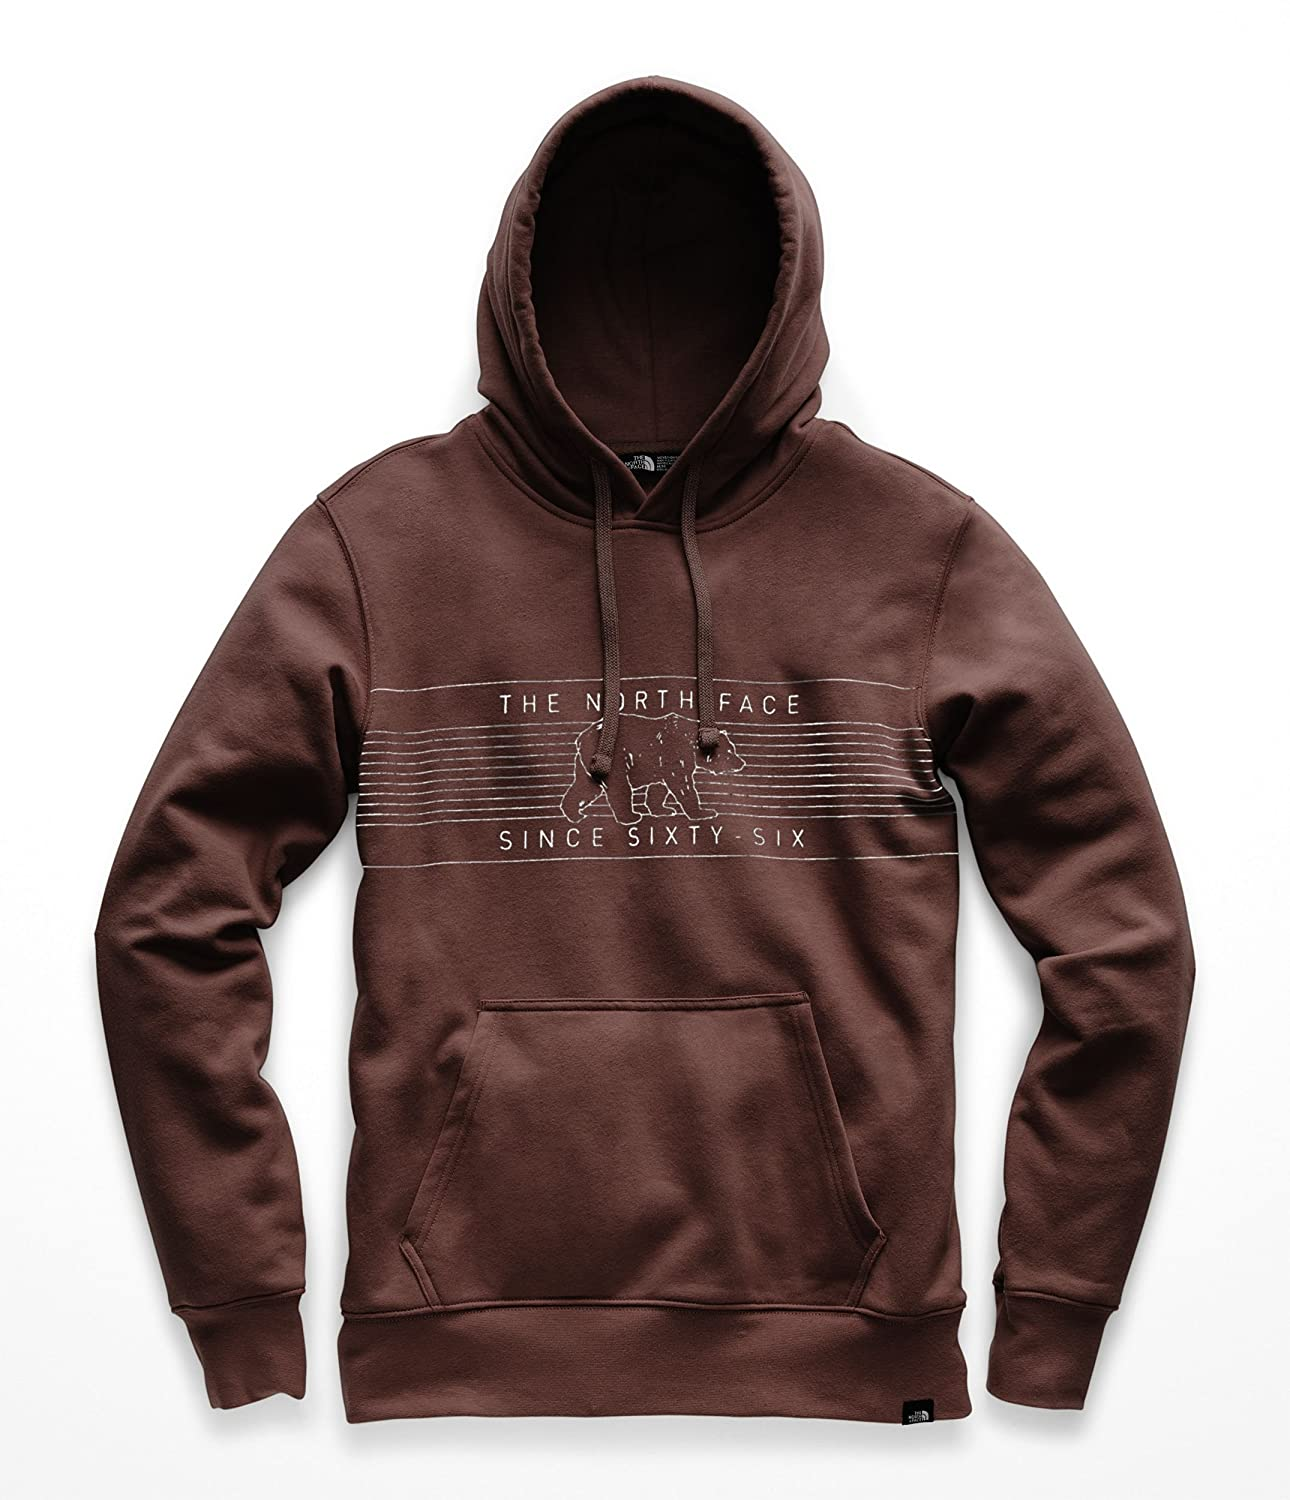 02bfb1fb8 The North Face Men's Pullover Big Bear Hoodie